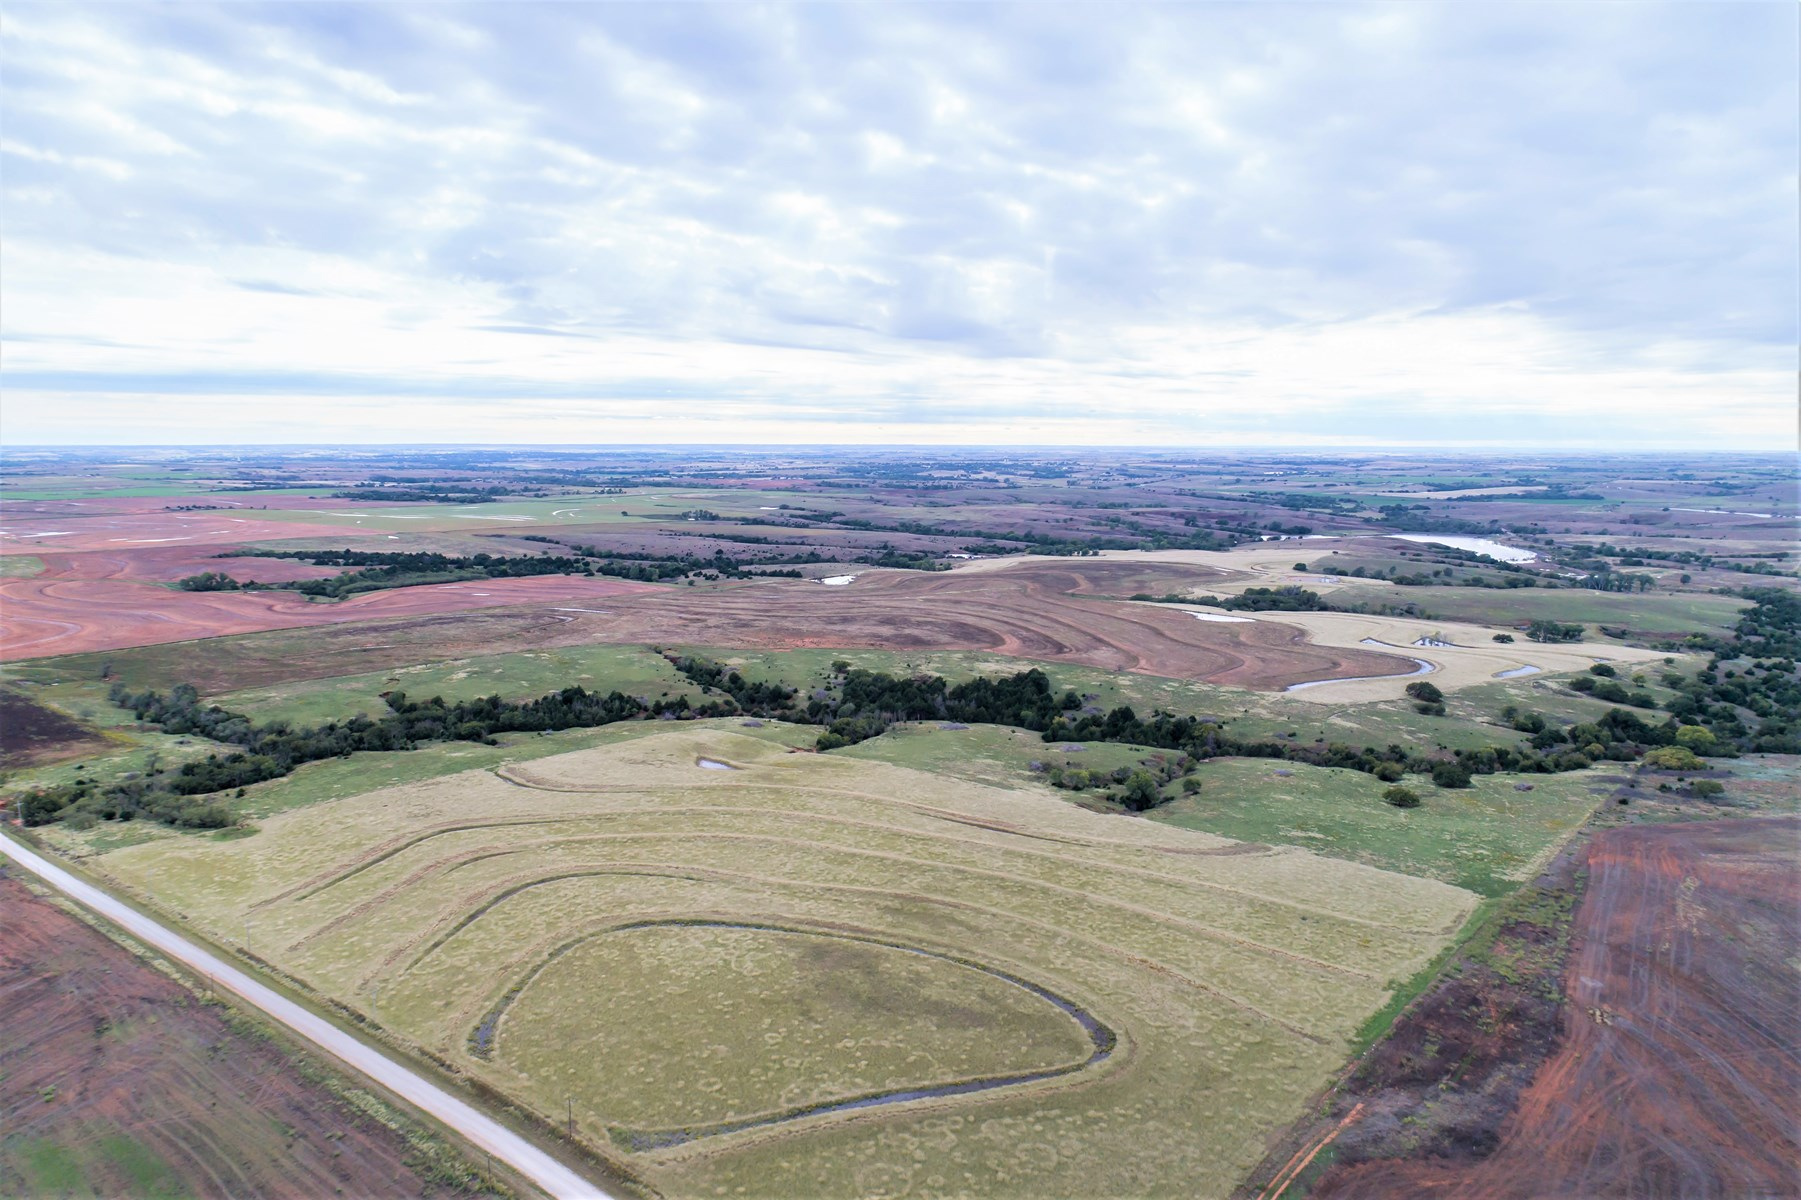 Oklahoma Farm, Ranching & Hunting Land for sale, ±320 Acres